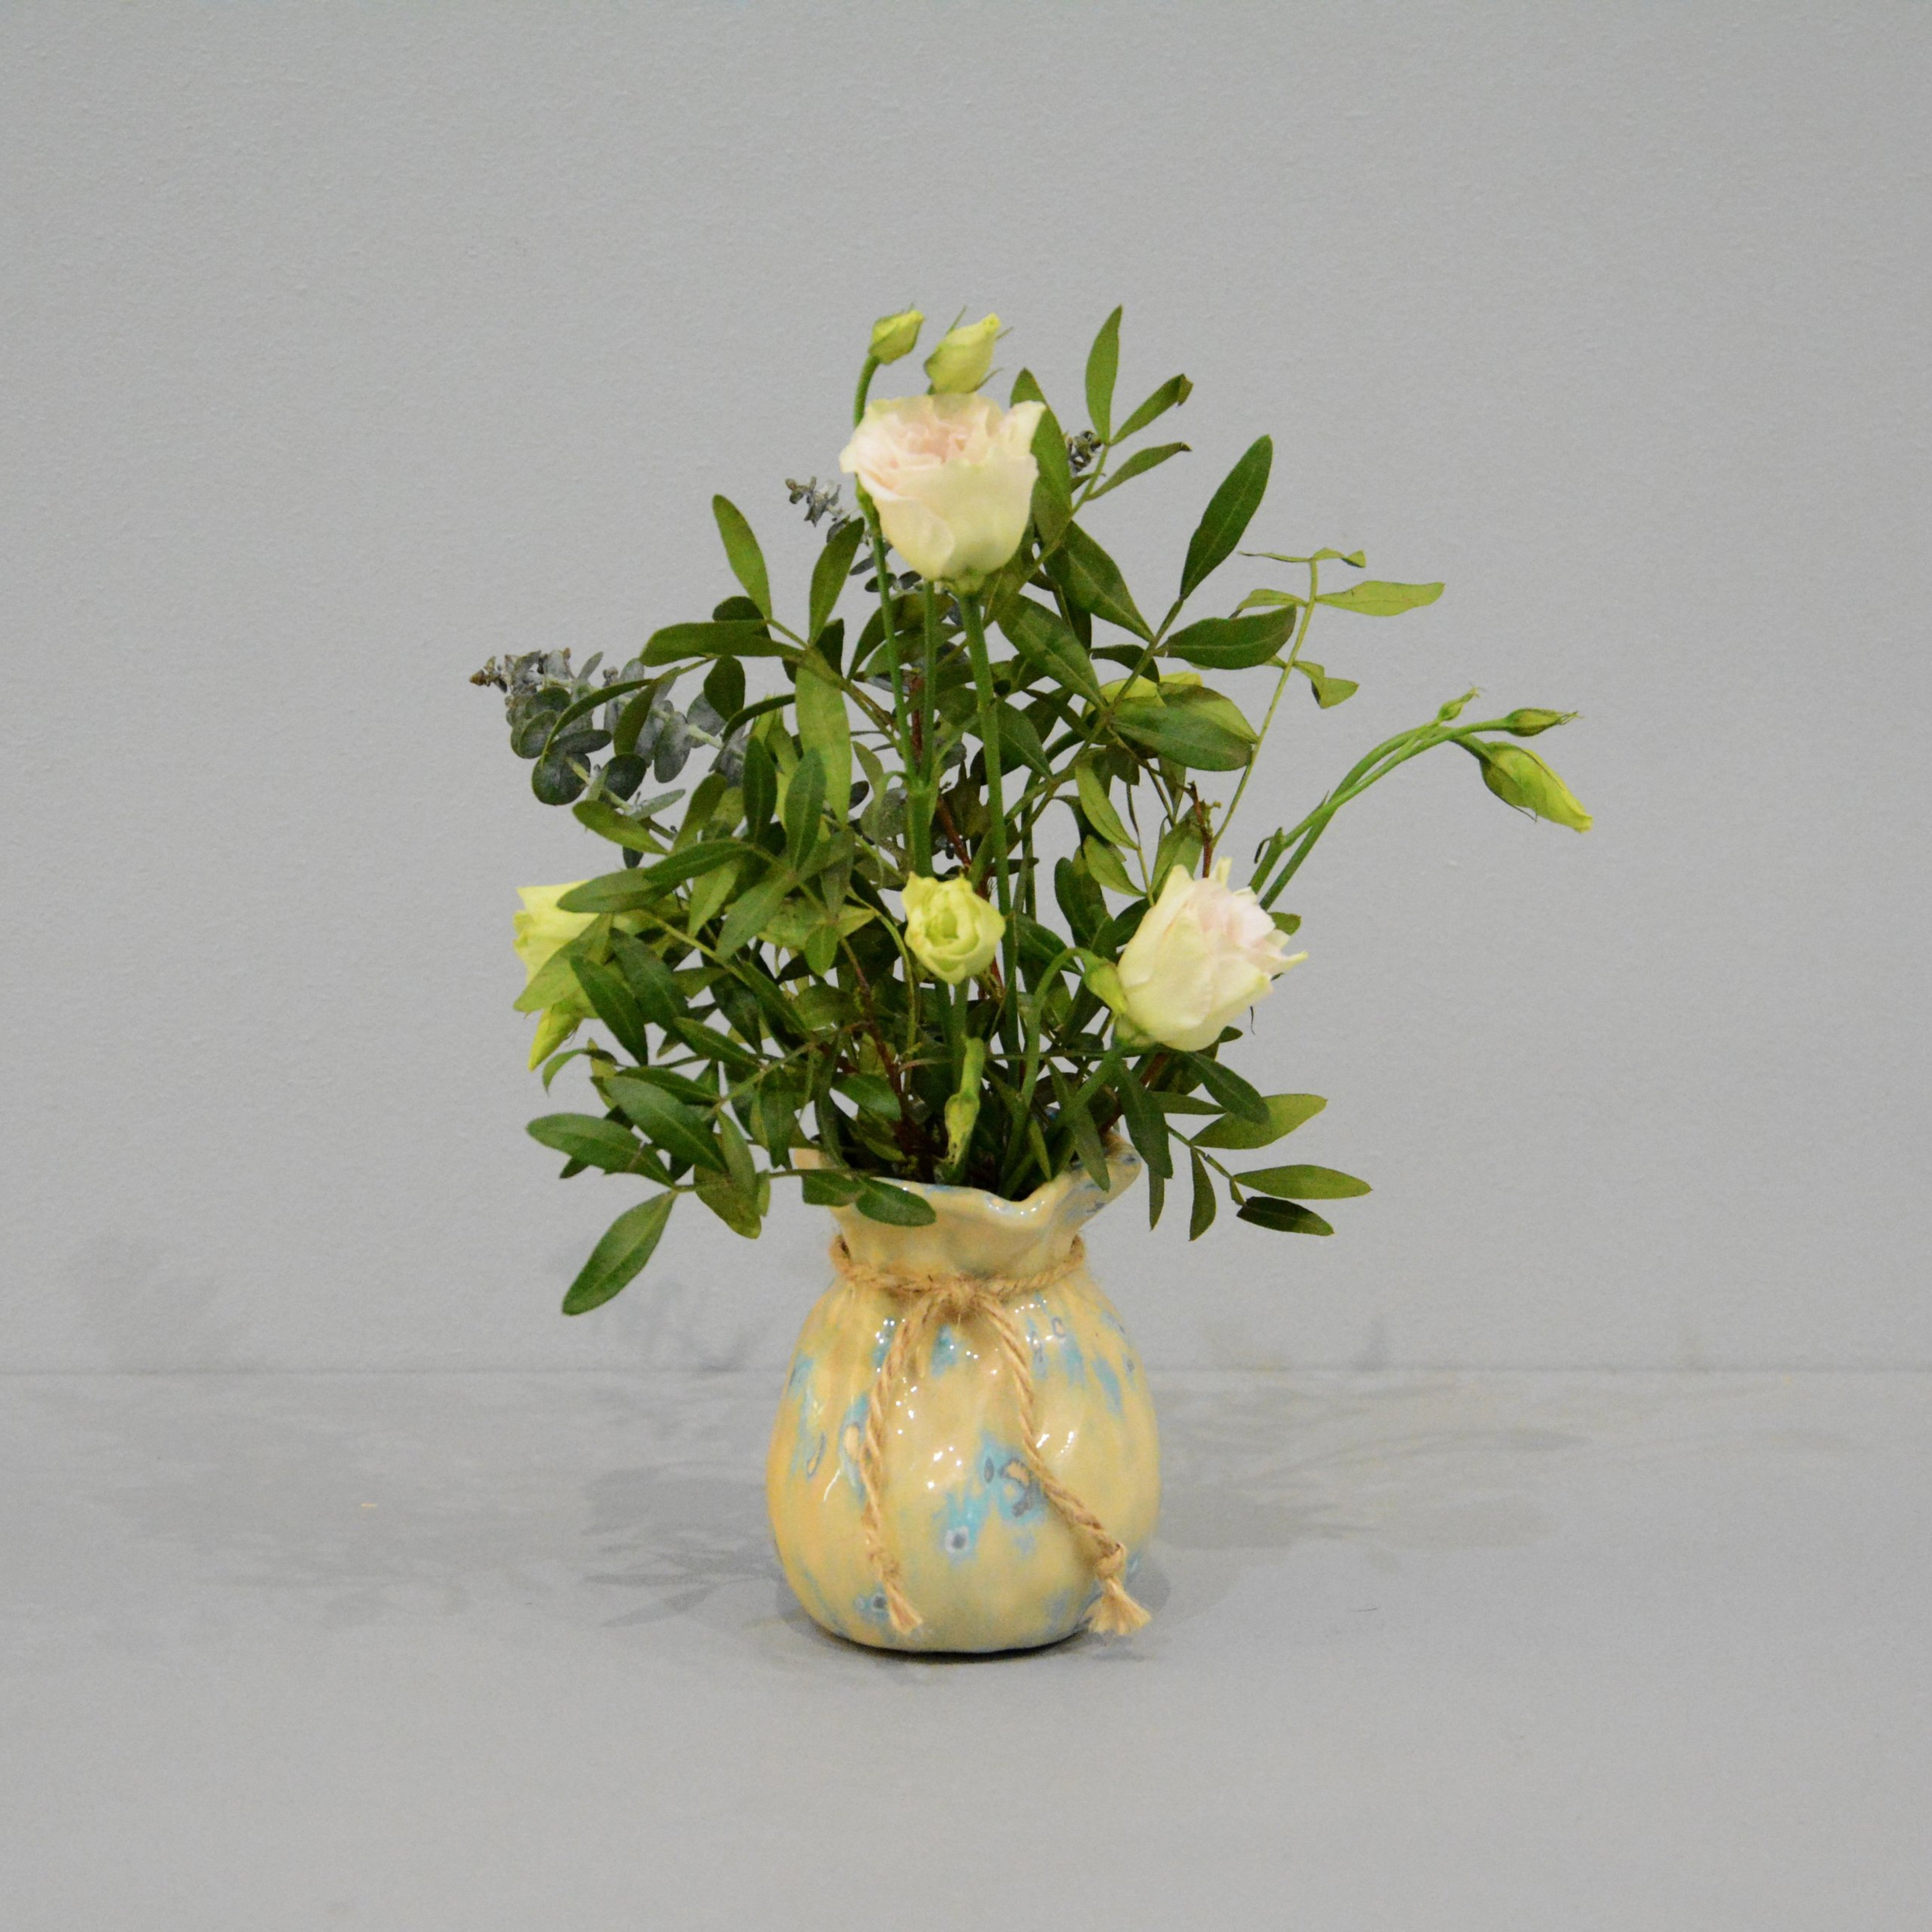 Small Vase or flowers «Beige Bagful», height - 9 cm, color - beige. Photo 1413-3840-3840.